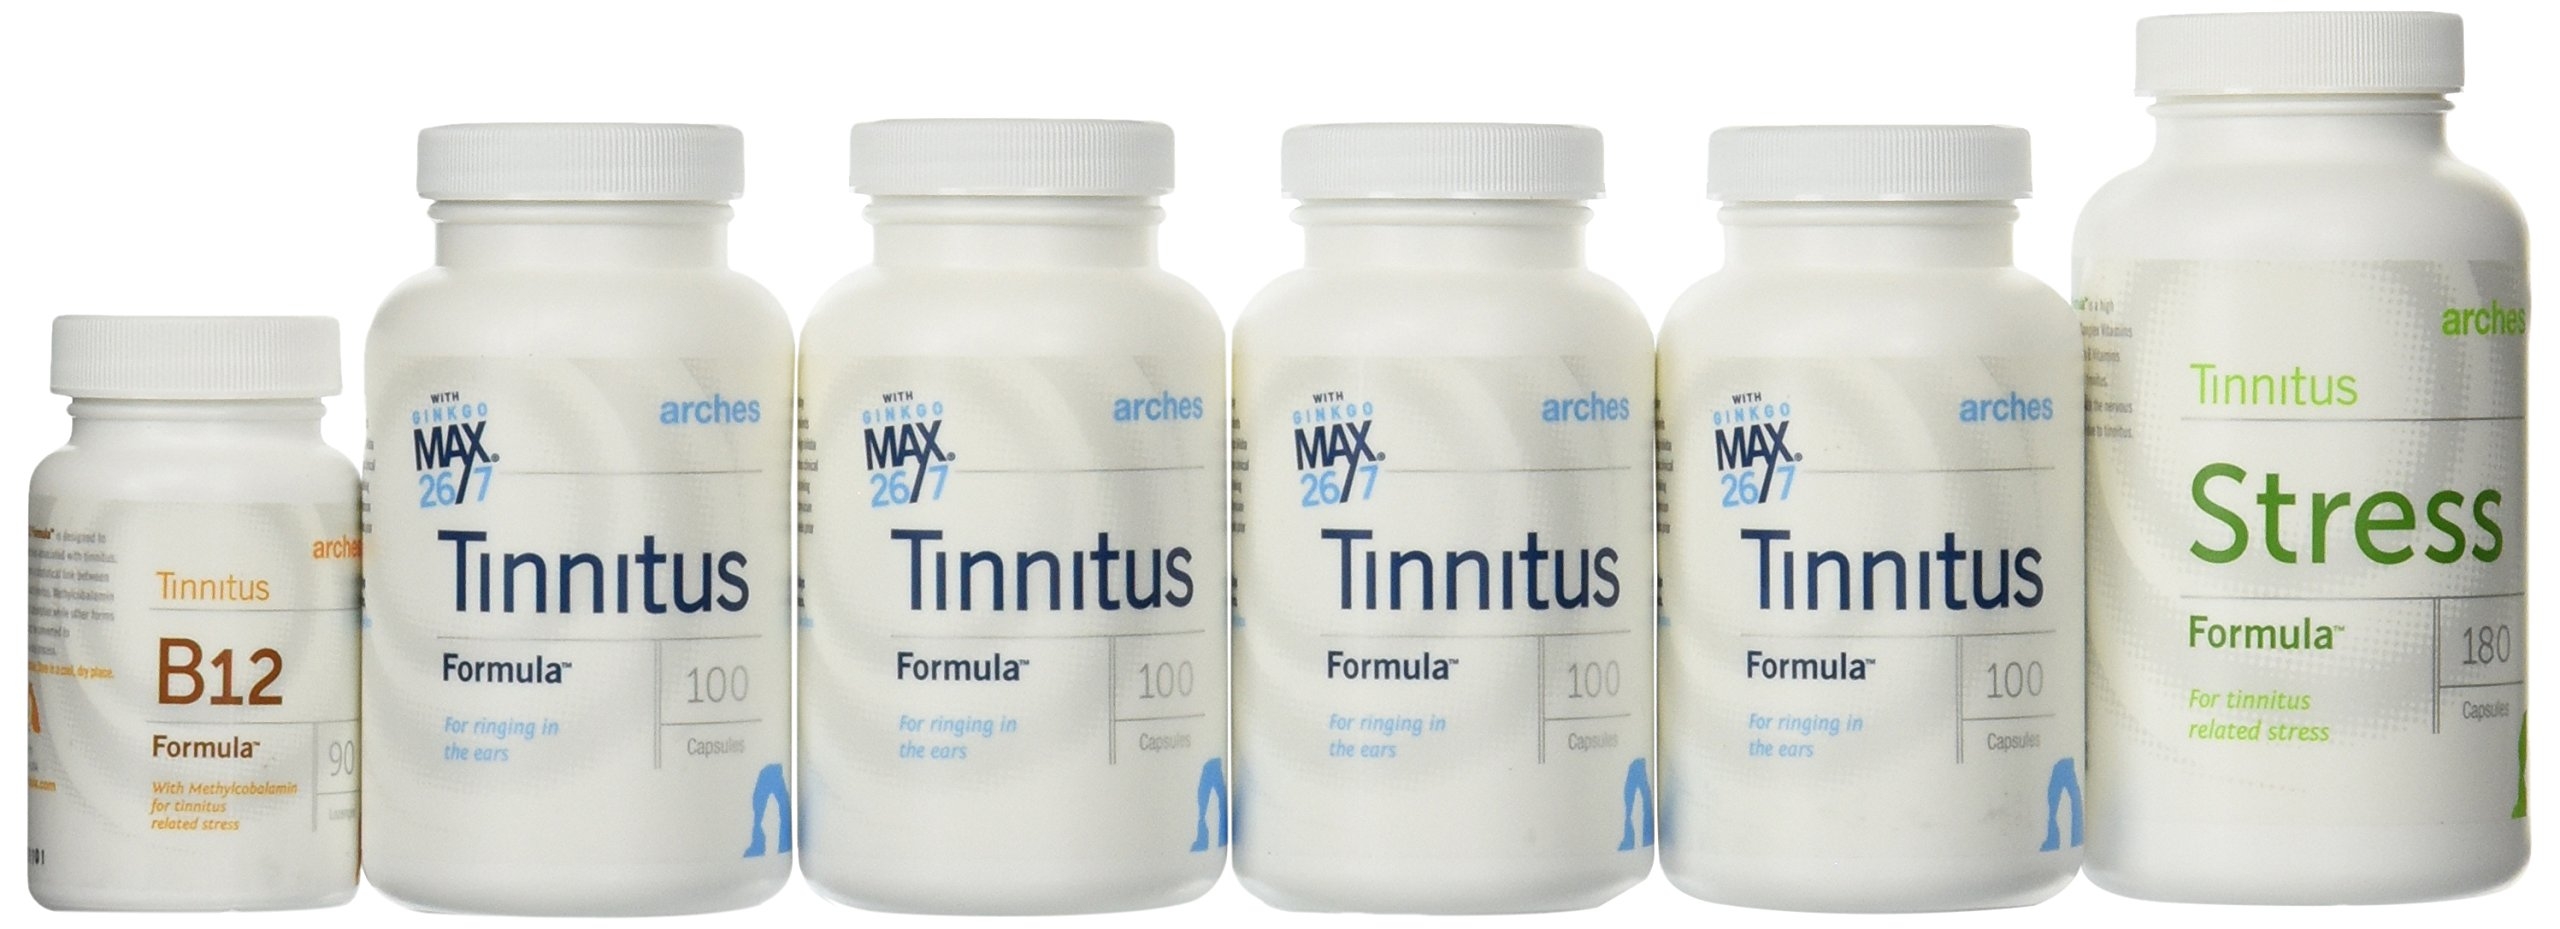 Arches Tinnitus Combo Pack - Now with Ginkgo Max 26/7 - Natural Tinnitus Treatment for Relief From Ringing Ears - 6 Bottles - 90 Day Supply by Arches Tinnitus Formulas (Image #2)